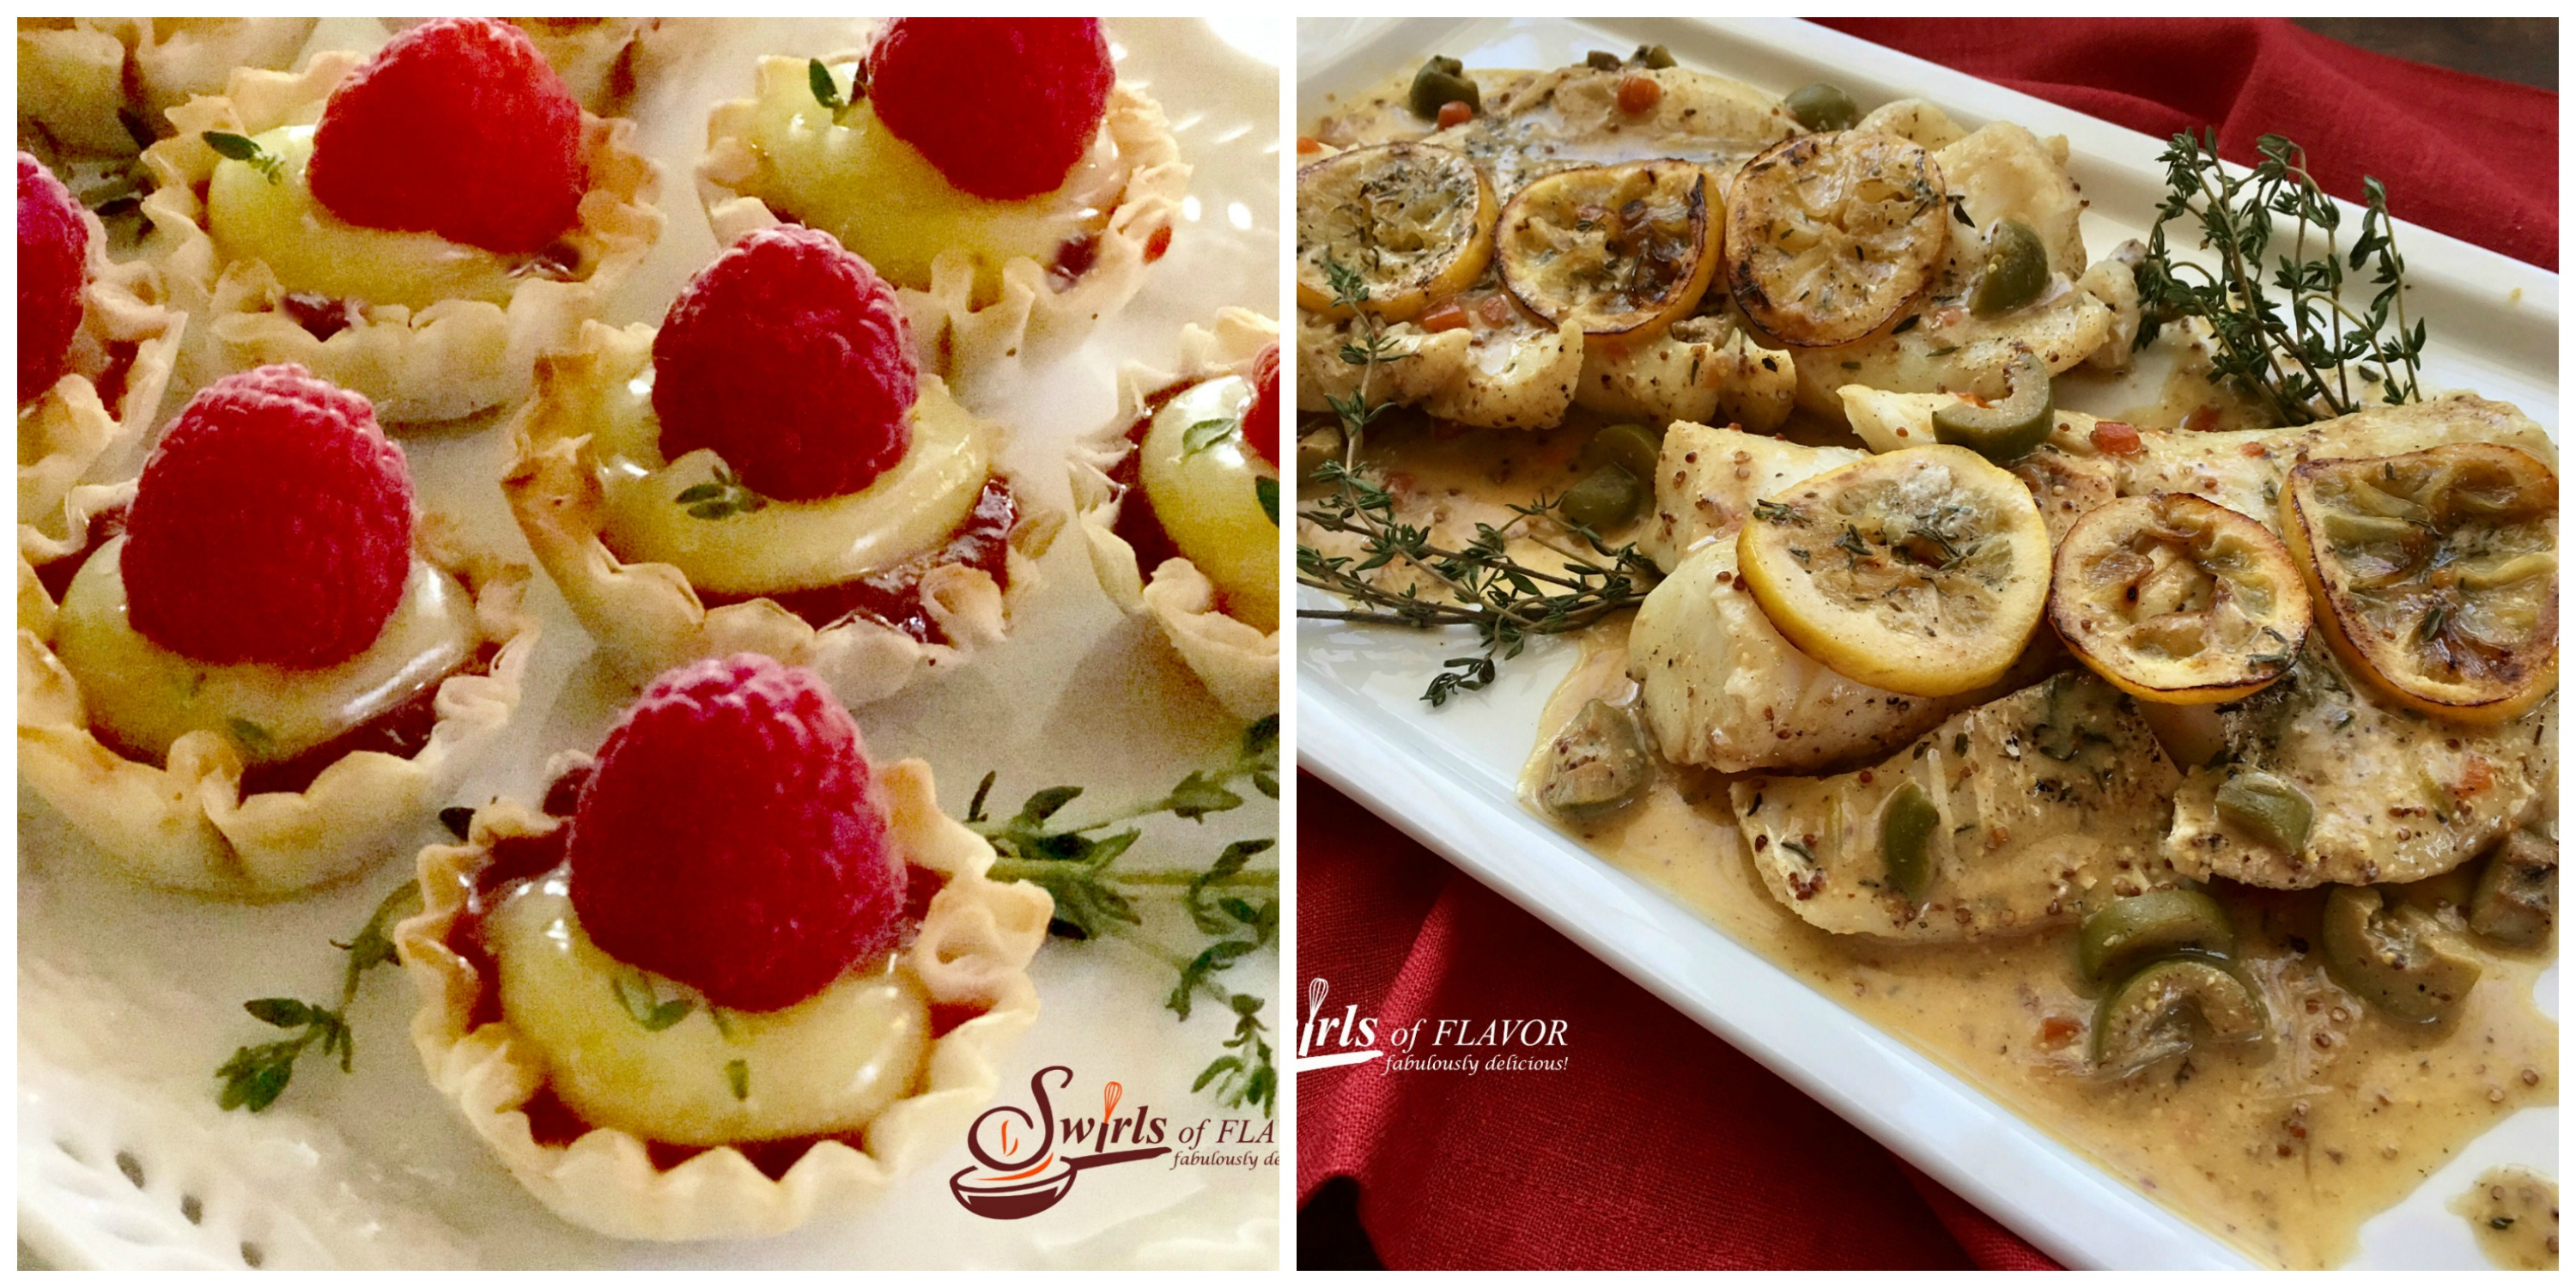 Raspberry Lemon Tartlets and Dijon Cod Saute